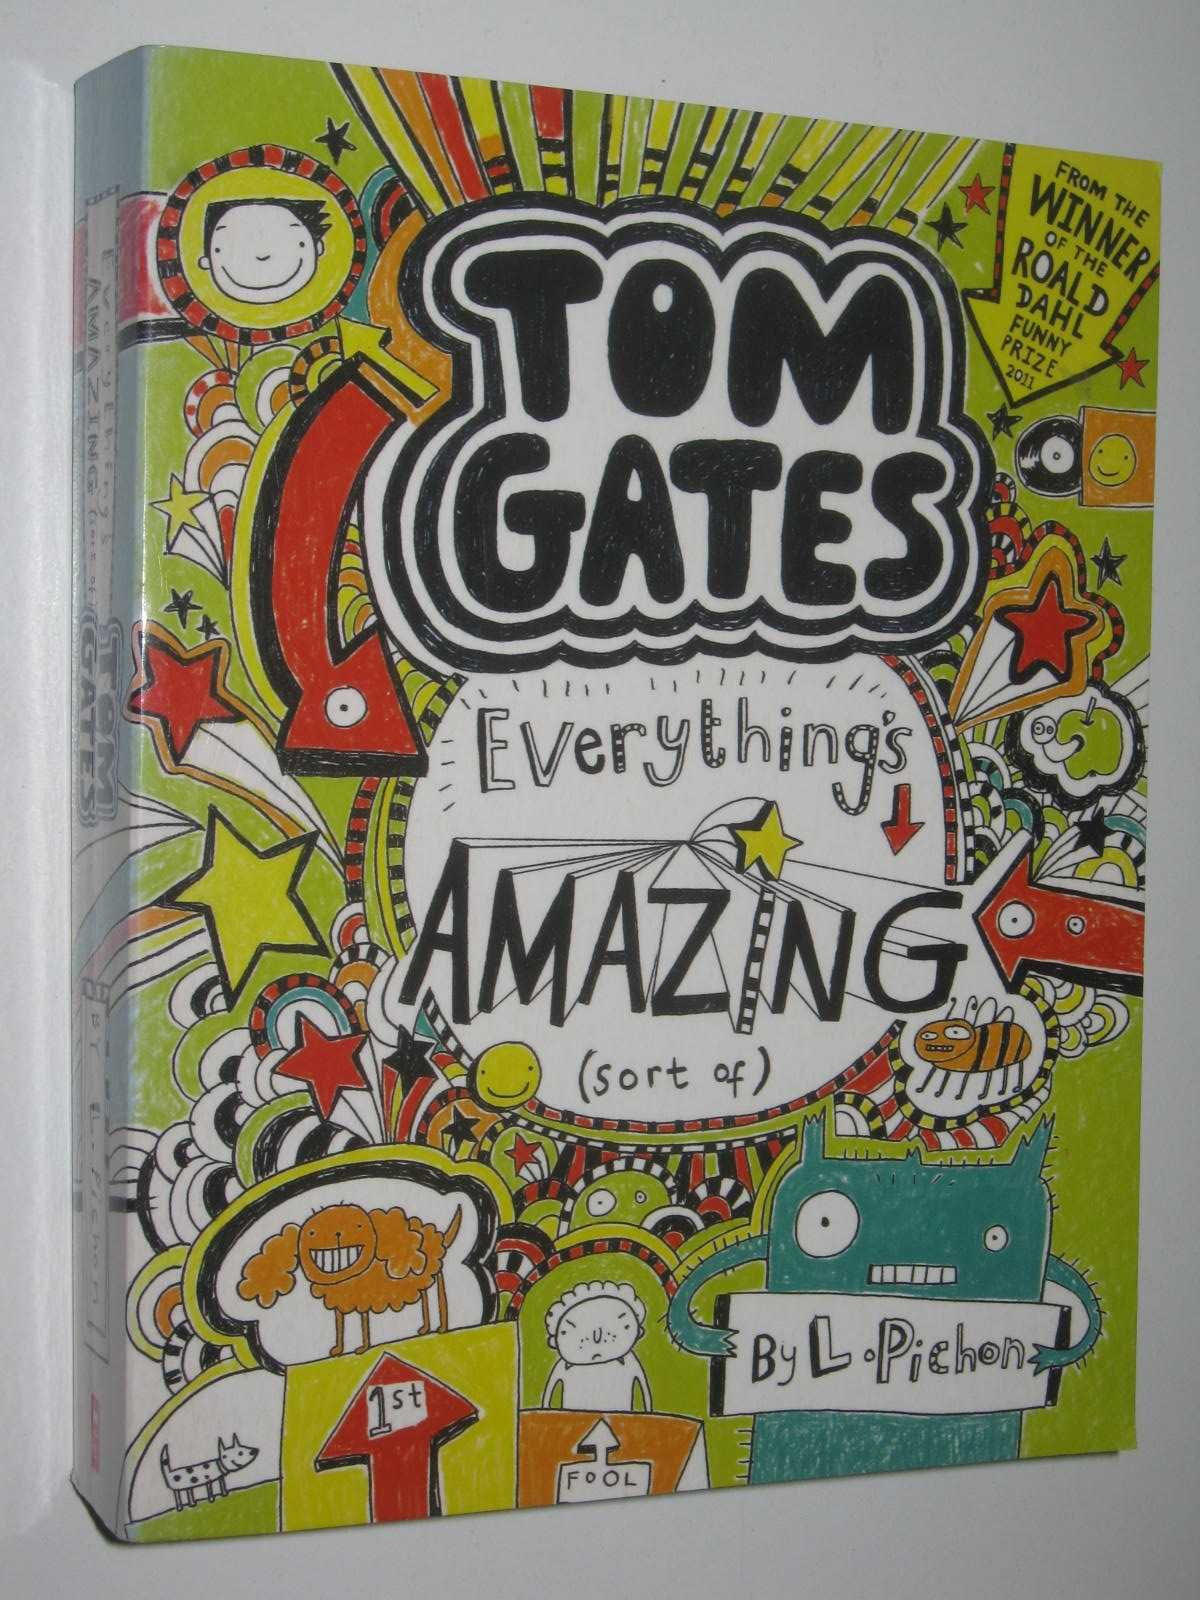 Image for Everything's Amazing (Sort of) - Tom Gates Series #3